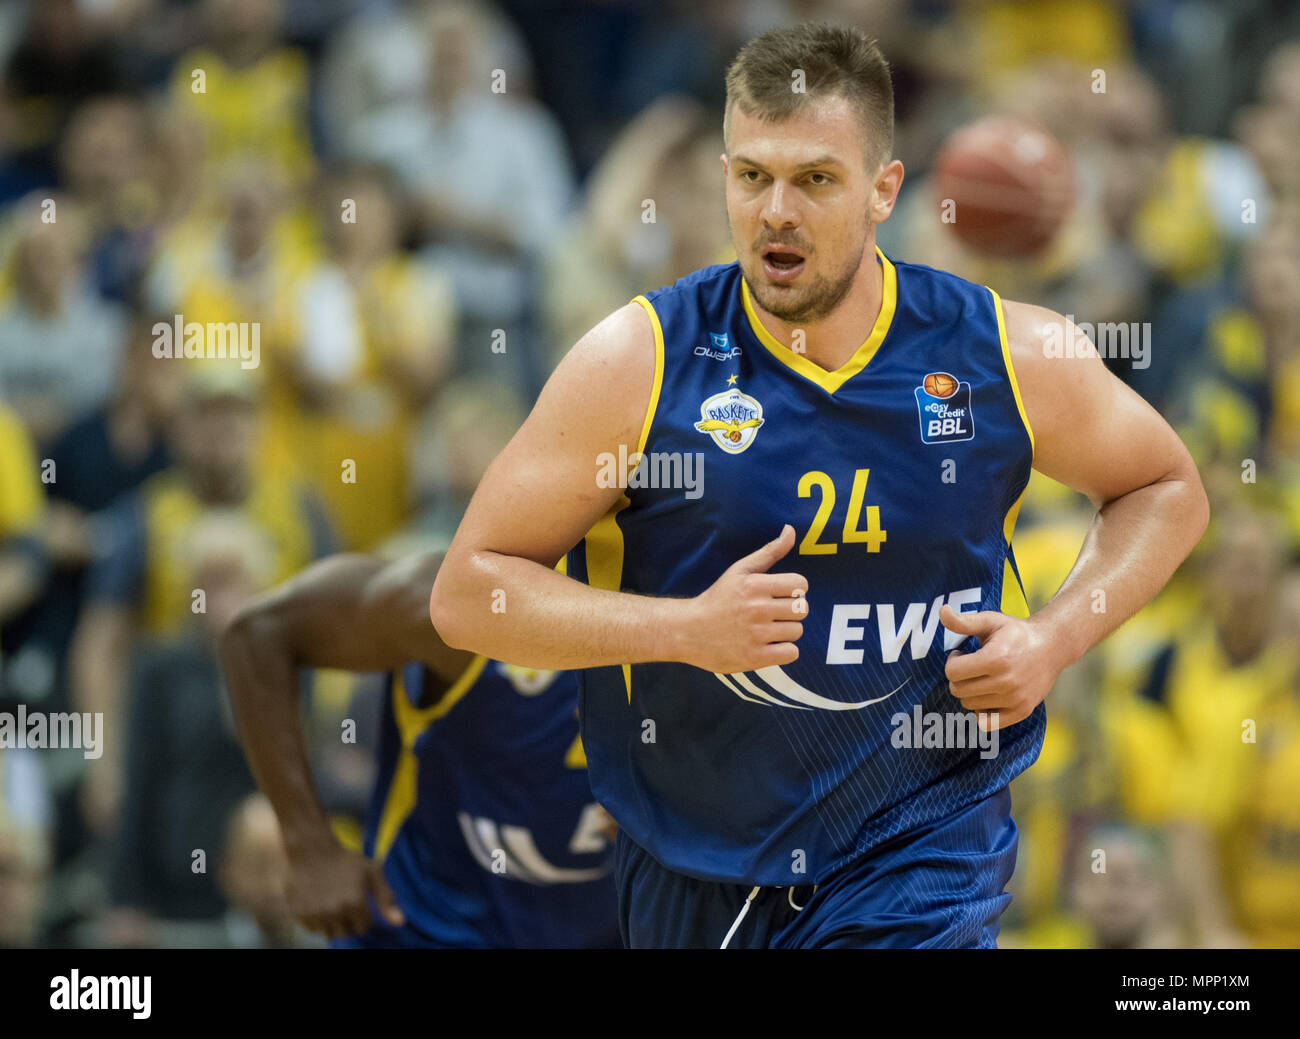 17 May 2018, Germany, Berlin: Bundesliga, quarter-final, ALBA Berlin vs. EWE Baskets Oldenburg in the Mercedes-Benz arena. Oldenburg's Rasid Mahalbasic. Photo: Soeren Stache/dpa - Stock Image